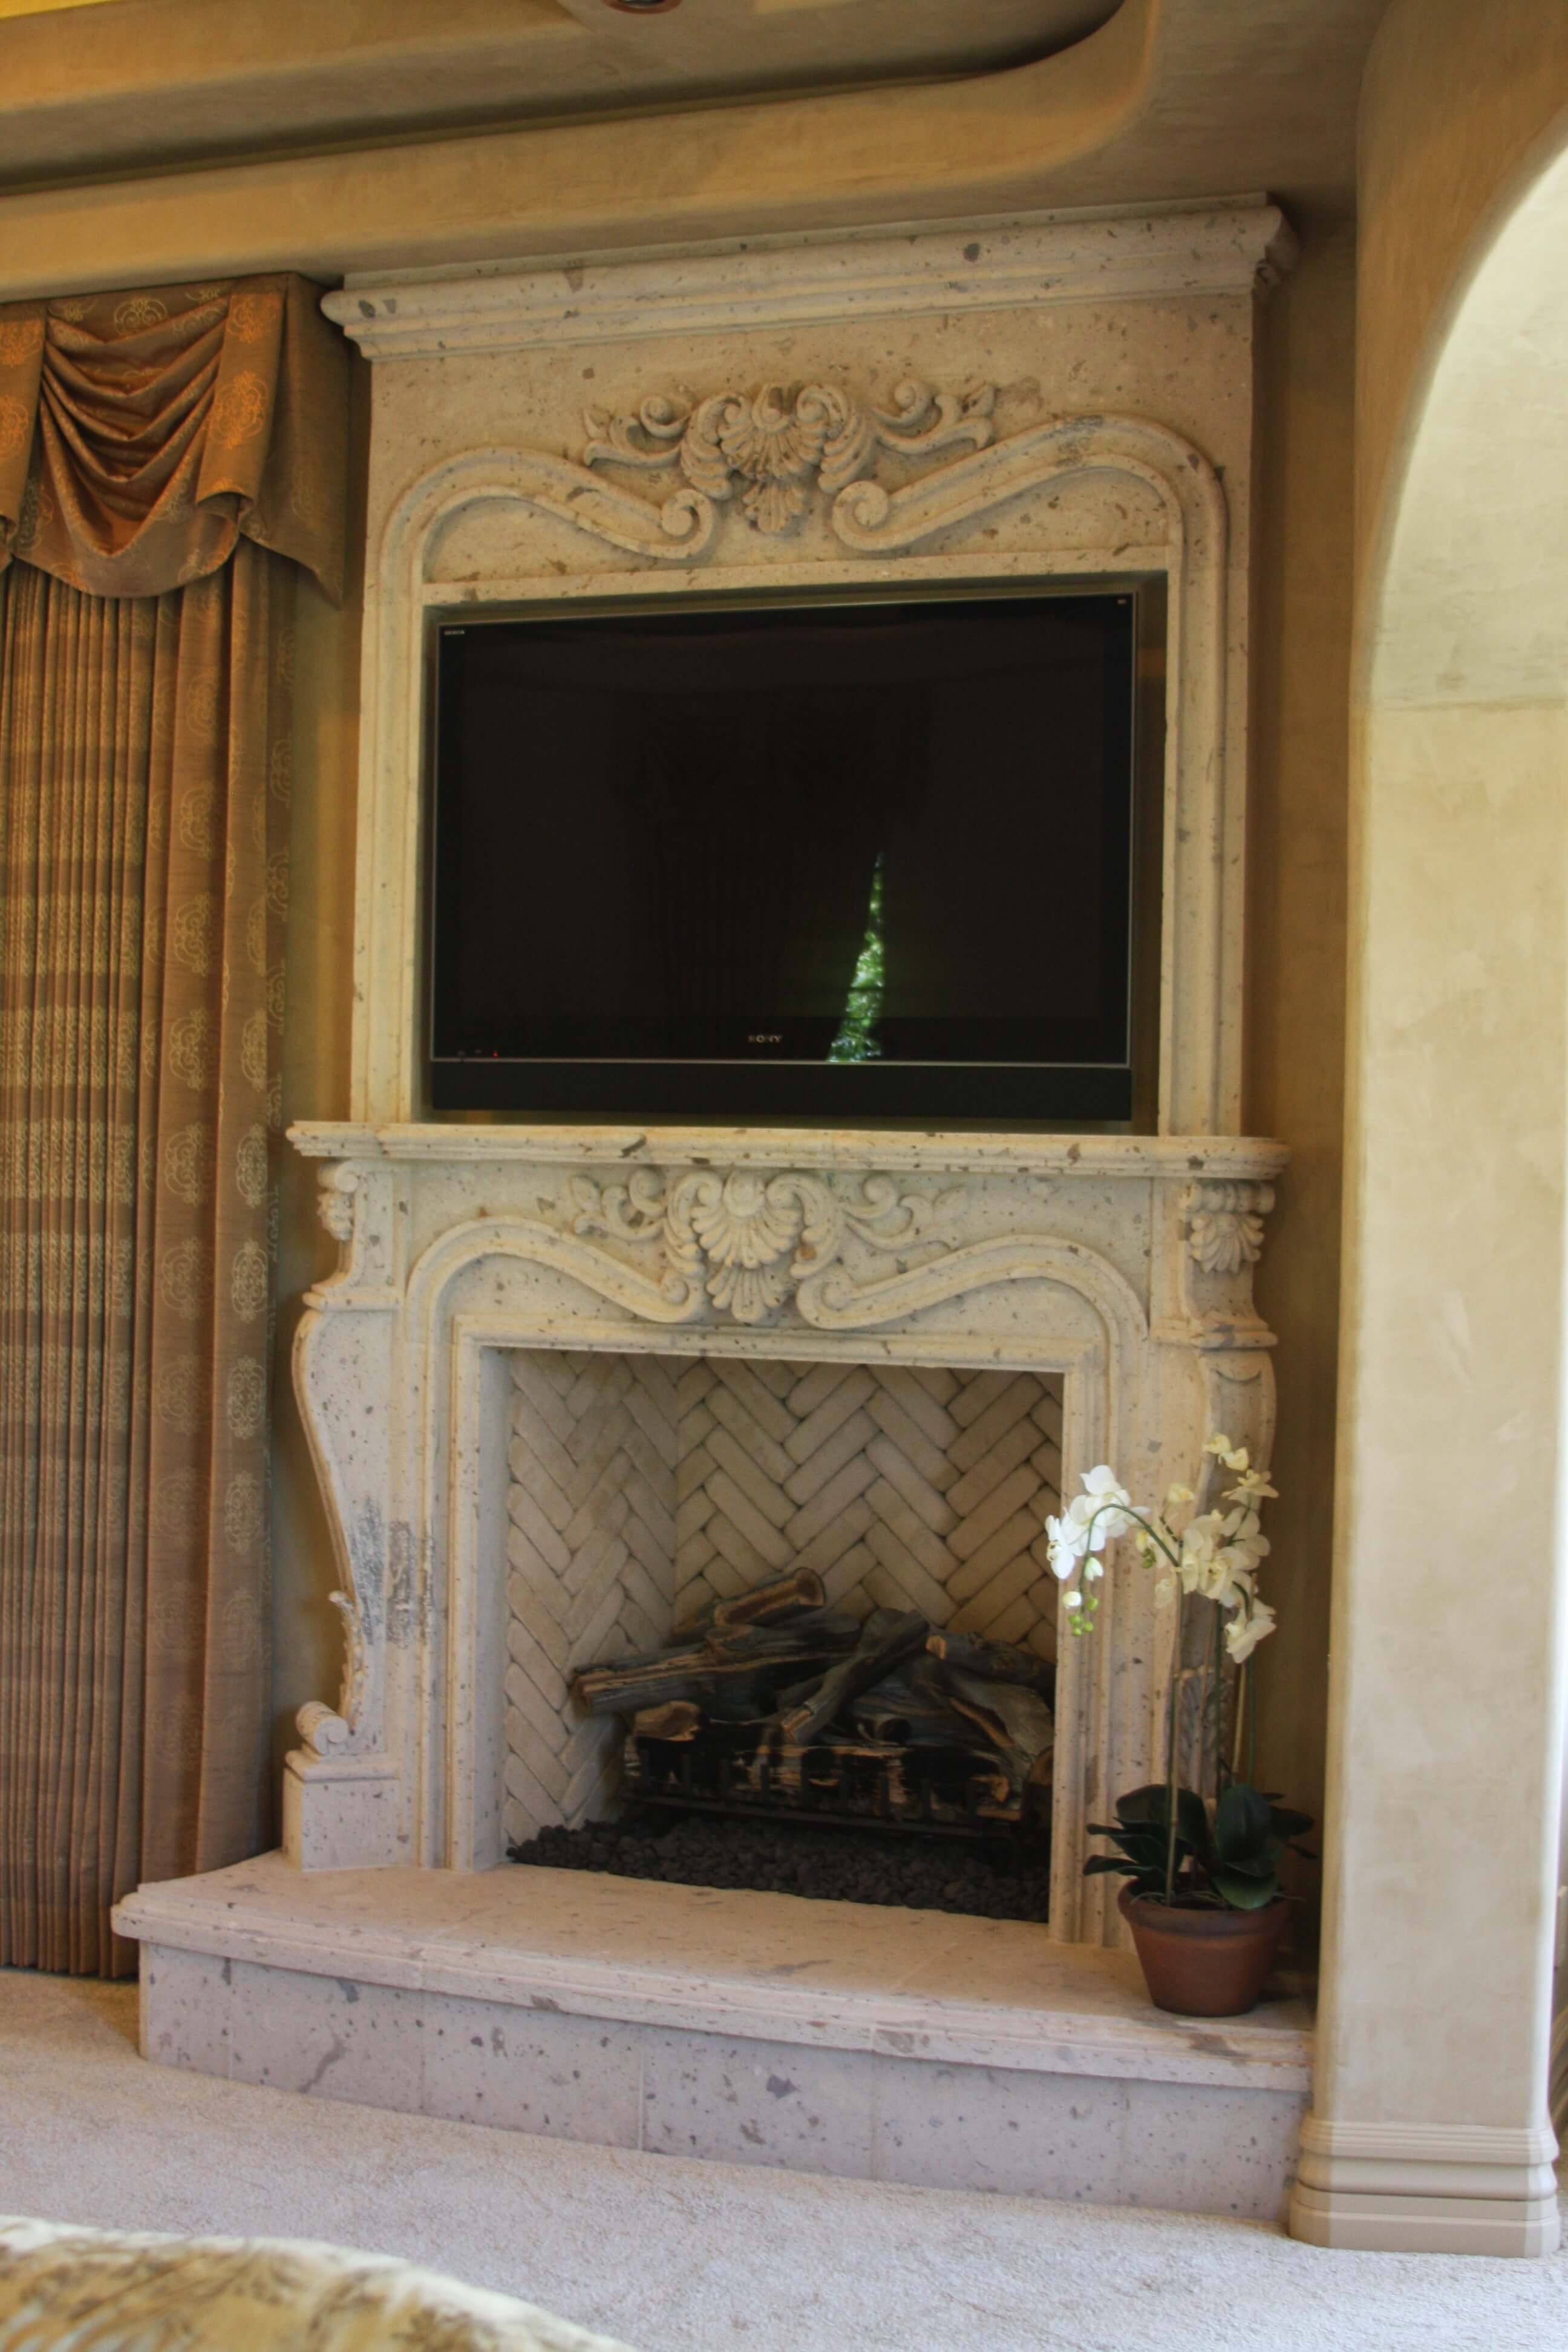 13-Old-World-Fireplace-Surround-at-Master-Bedroom-Suite-in-Rio-Blanco-Cantera-Stone